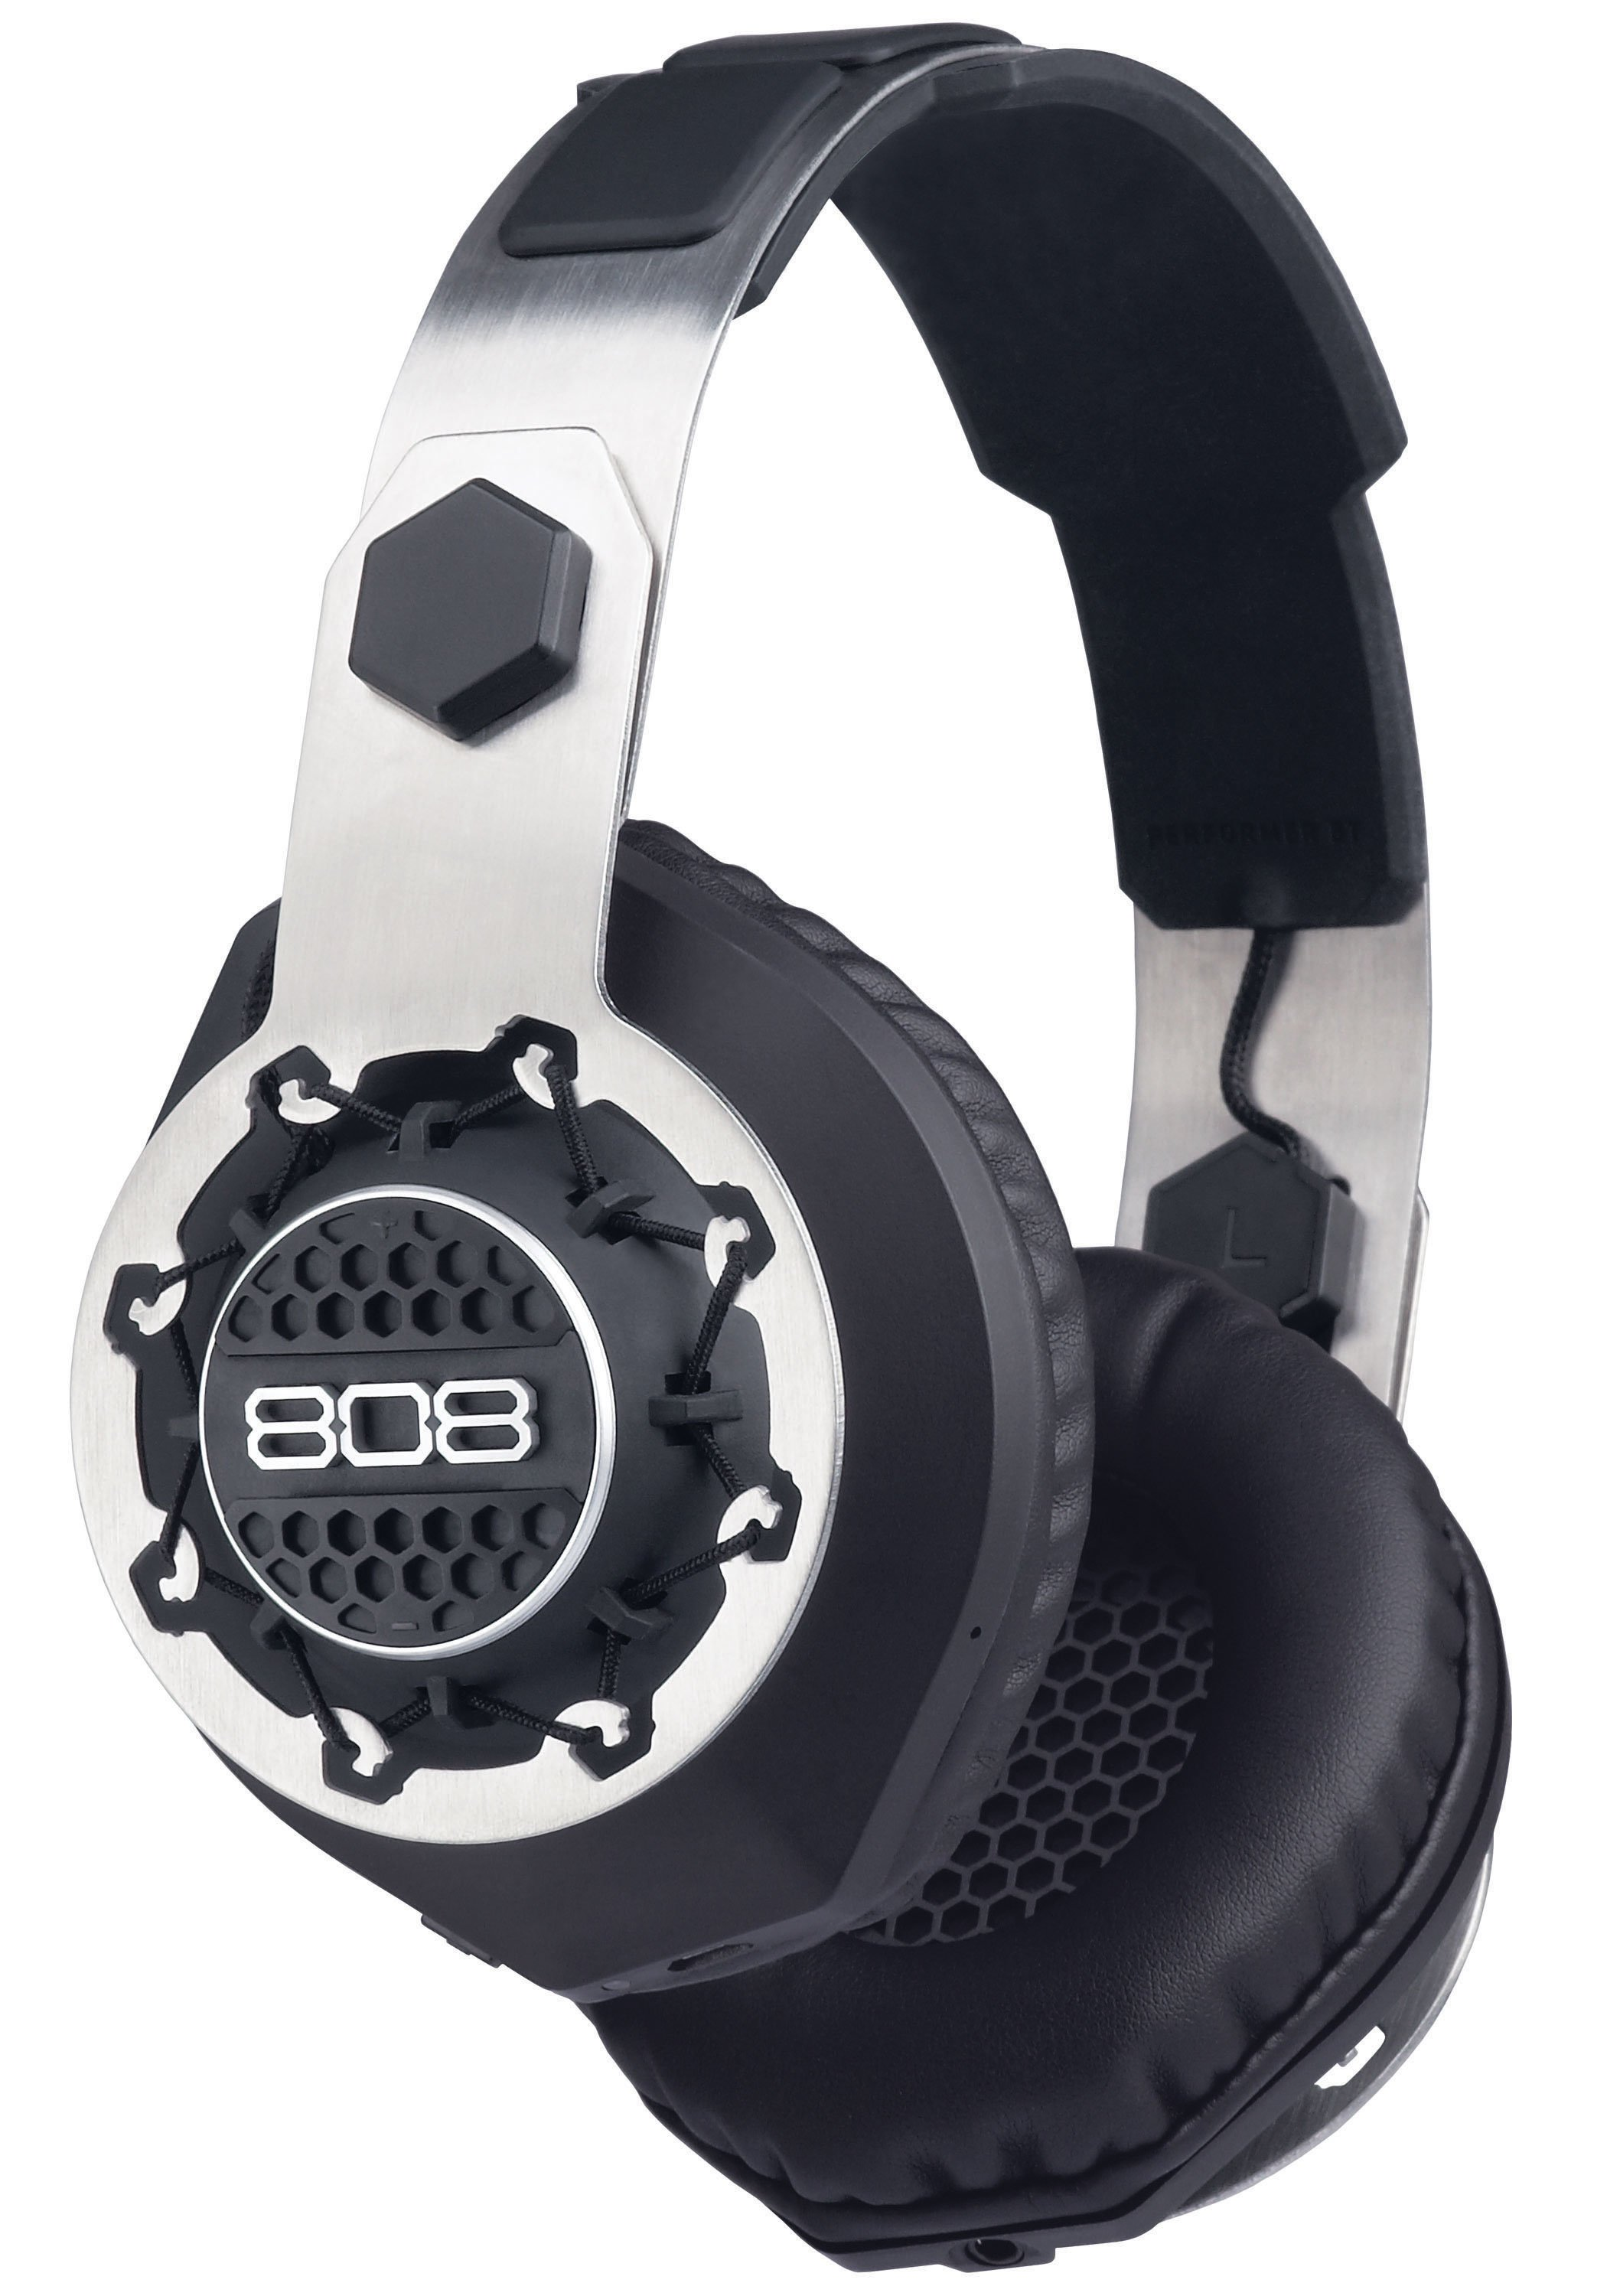 808 Performer BT headphones flex fit design